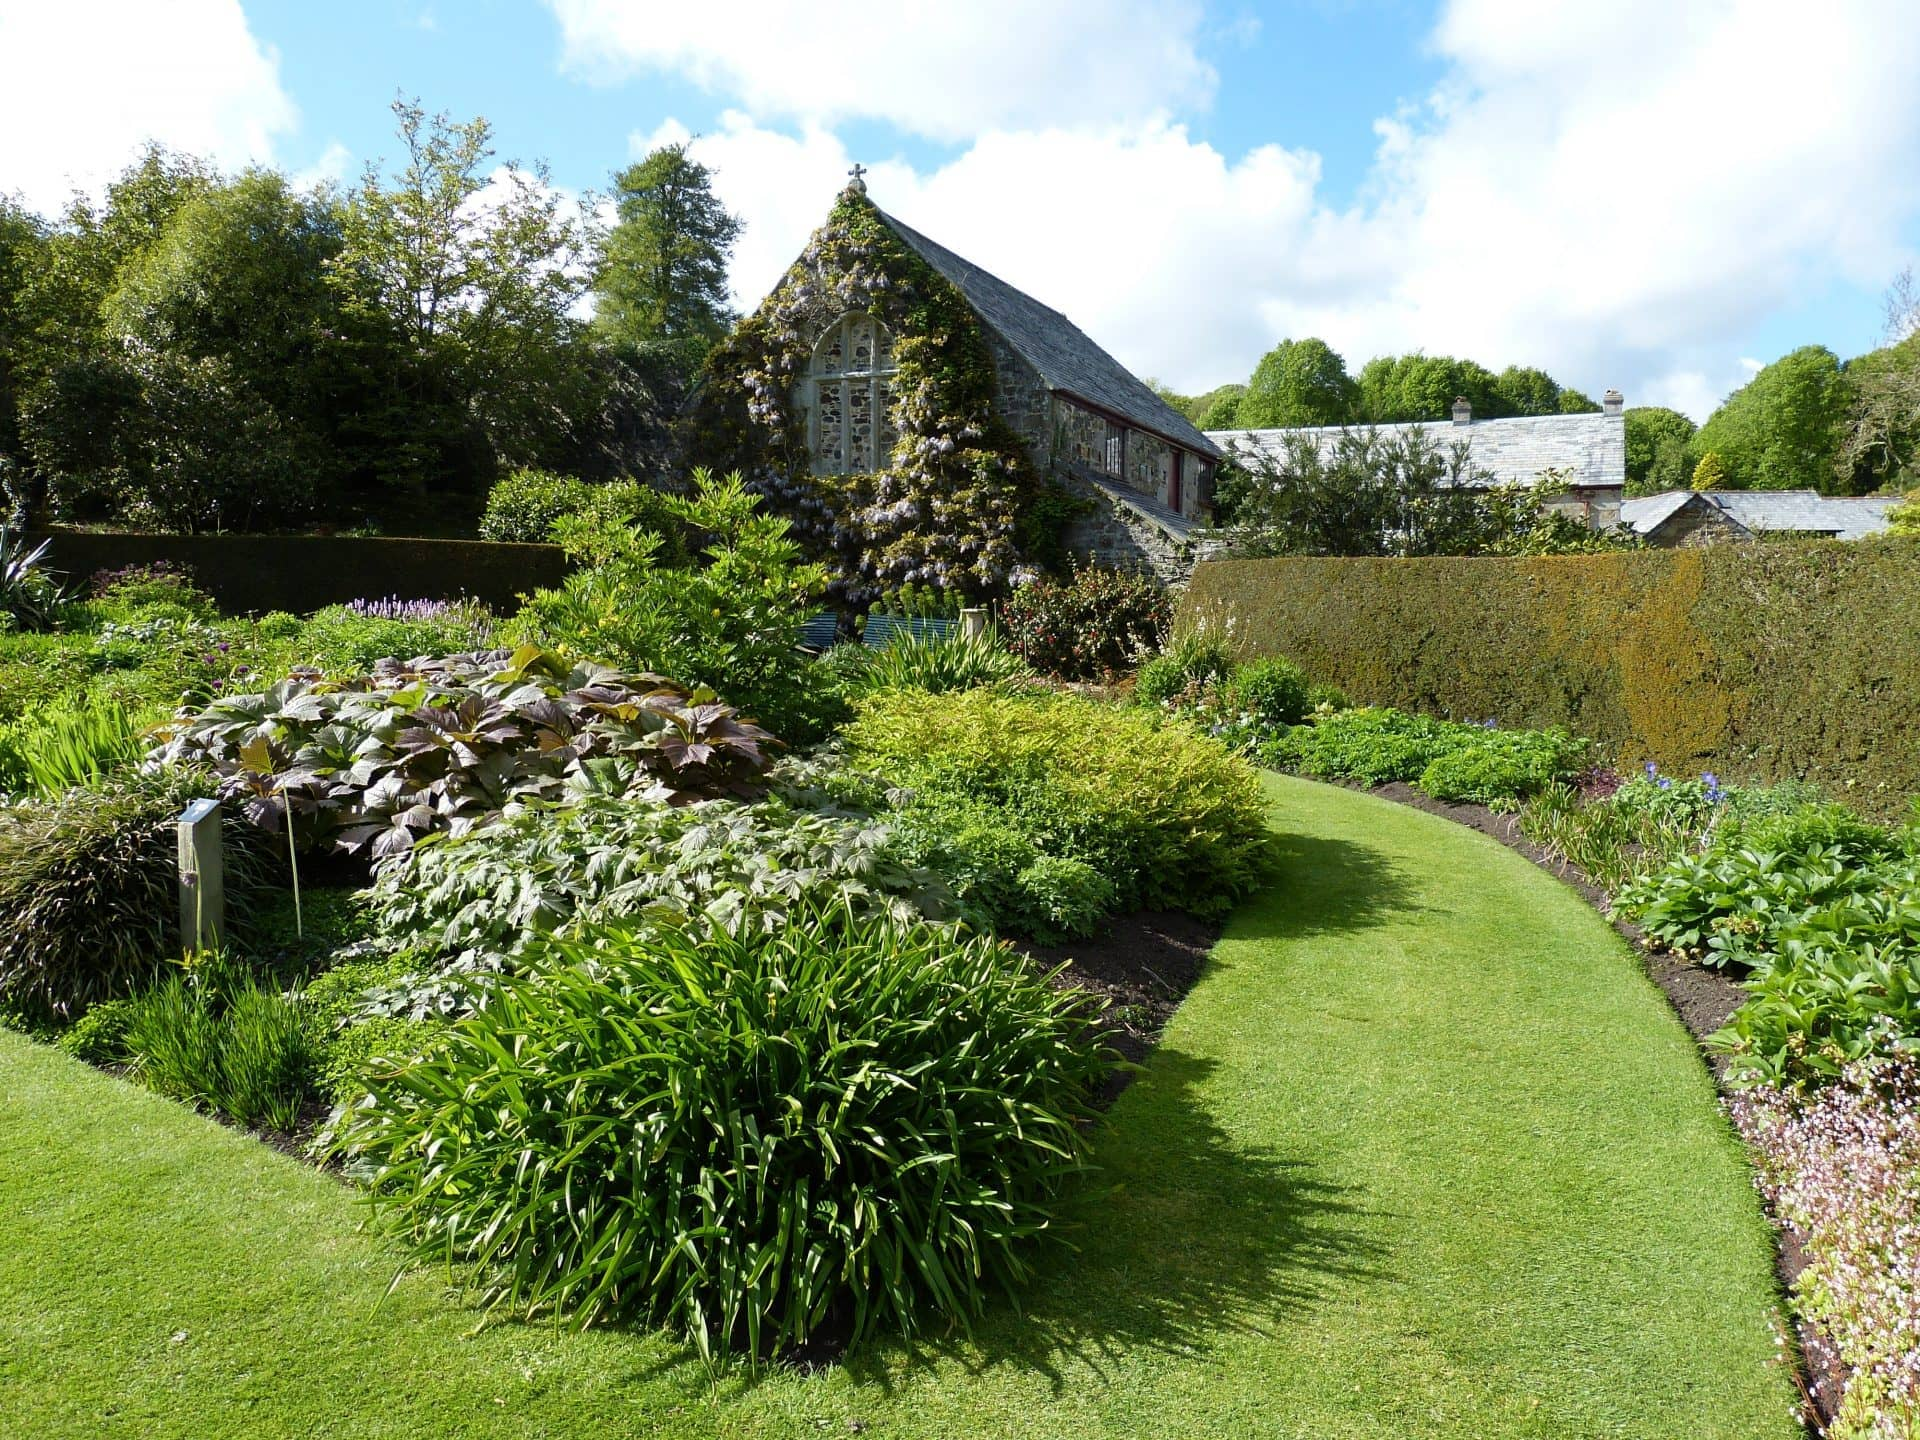 Romantische gartenreise durch cornwall mit oliva for Gardening jobs cornwall